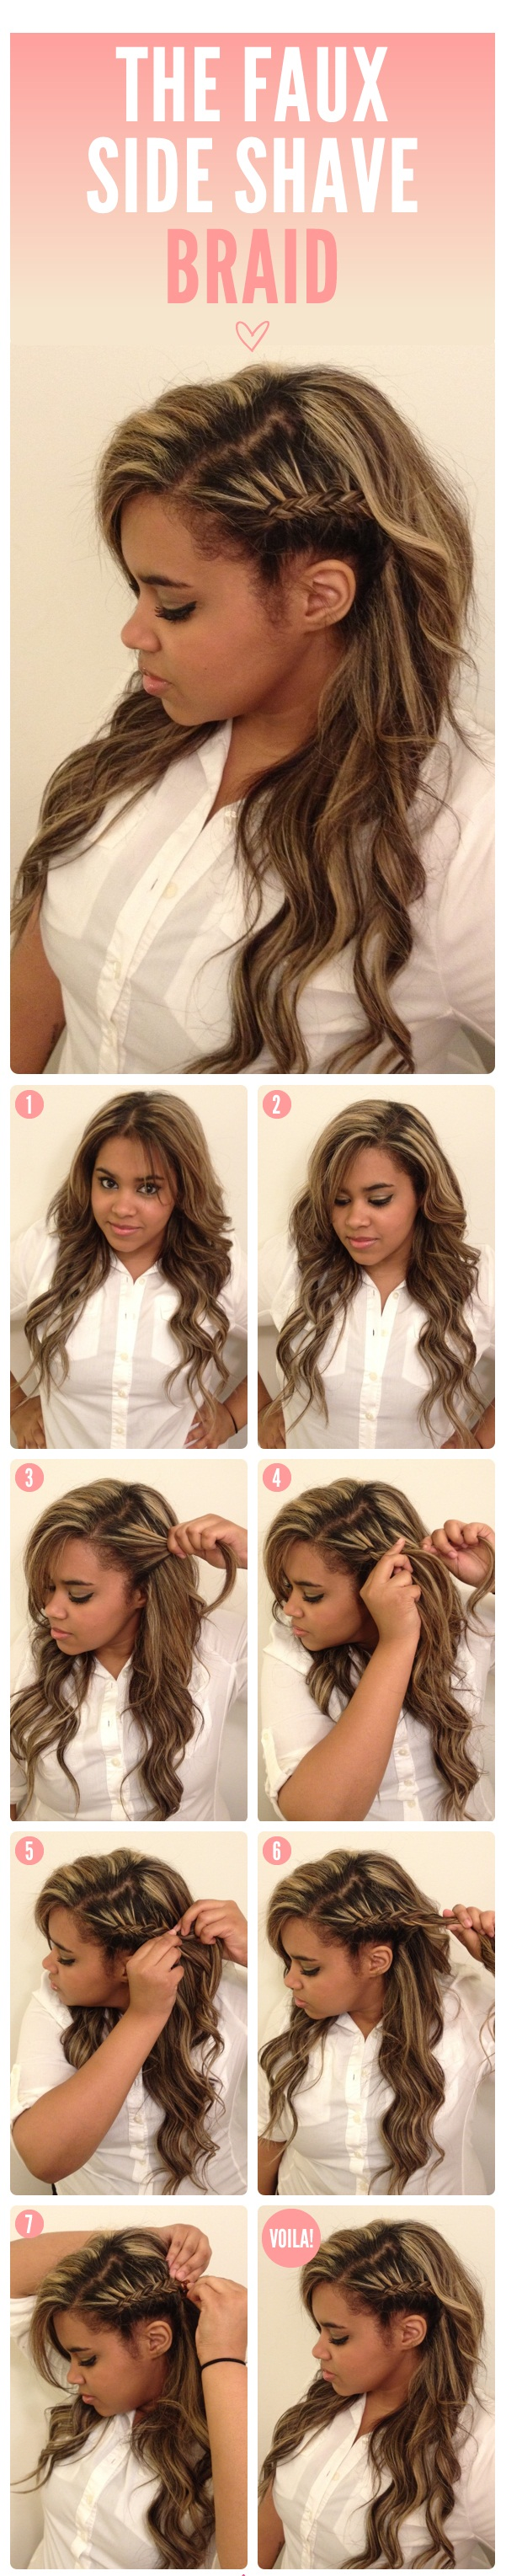 25 diy braided hairstyles you really have to pin – sheknows